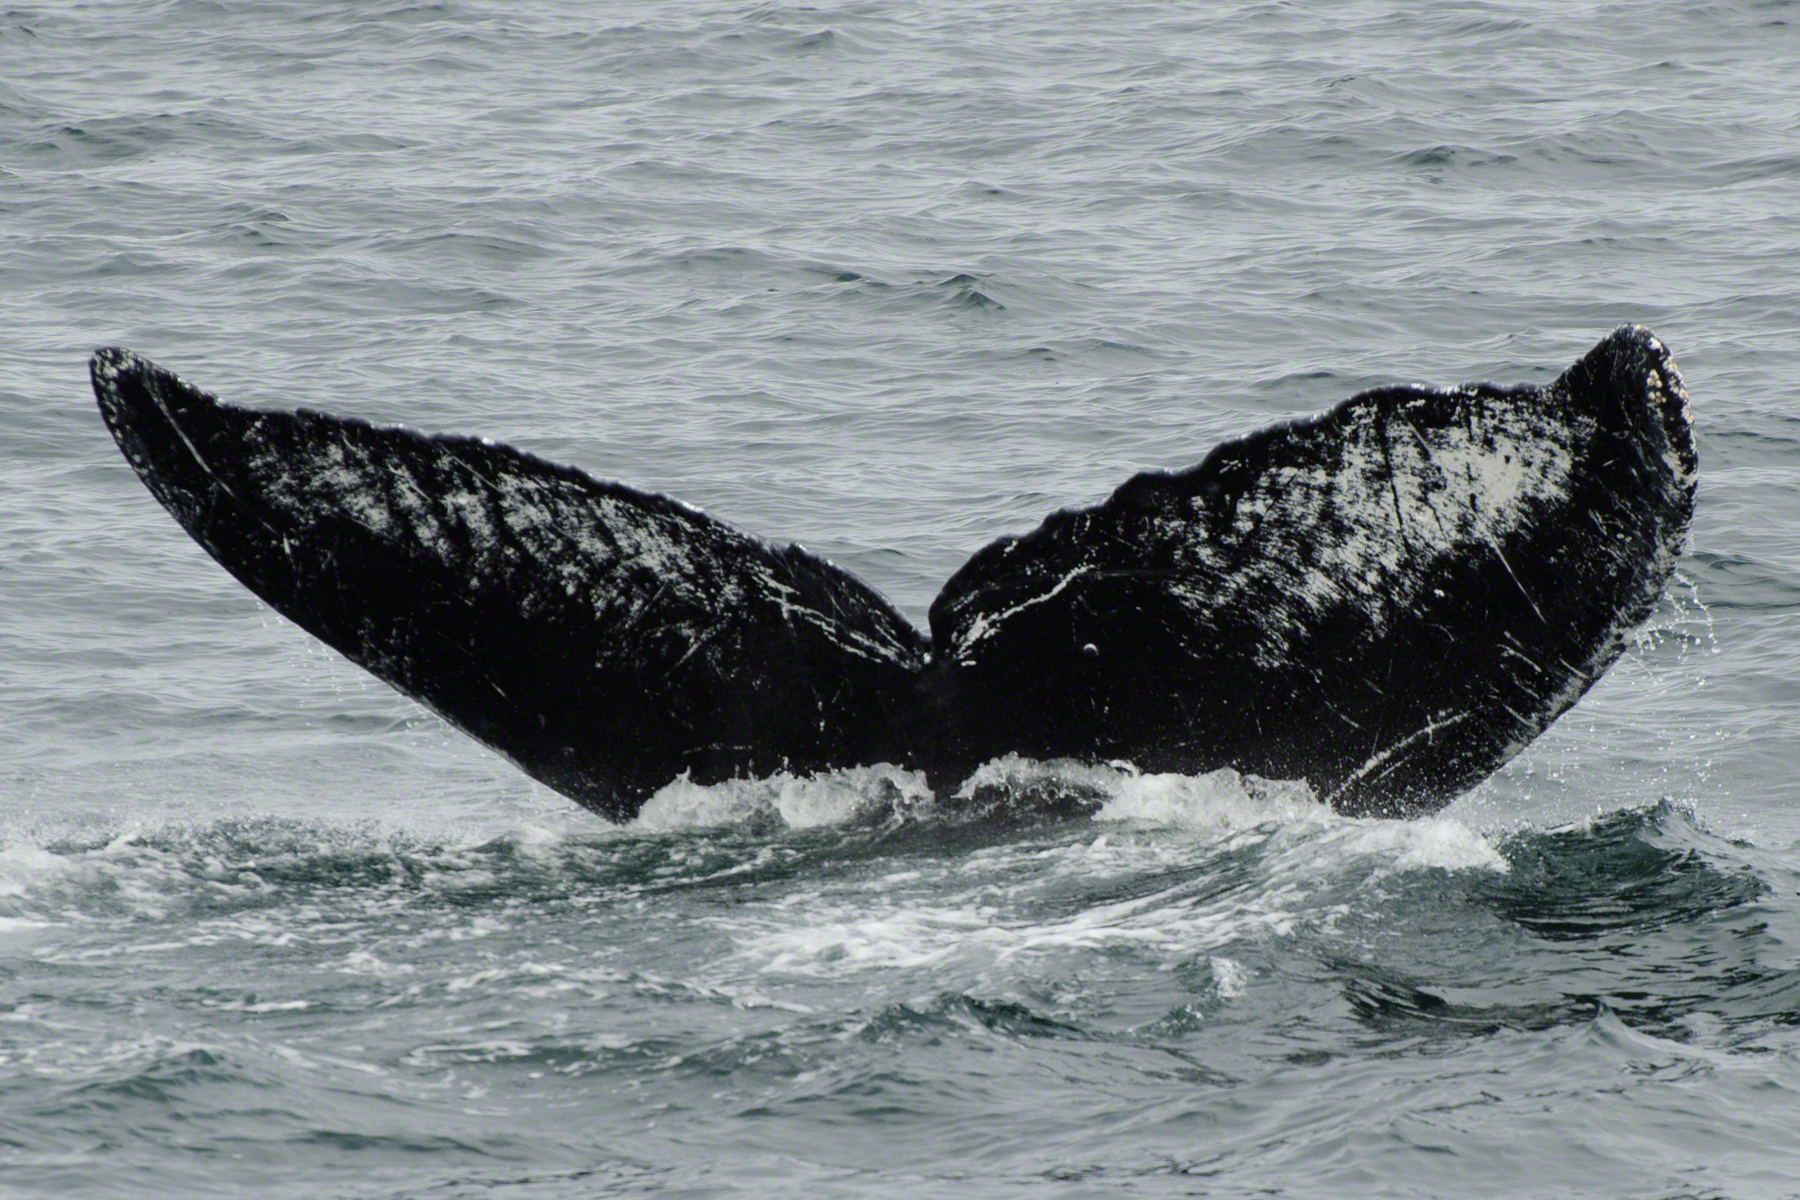 Old Timer's Flukes captured from the deck of the M/V Northern Song July 12th. (Jim Nahmens/Nature's Spirit Photography)